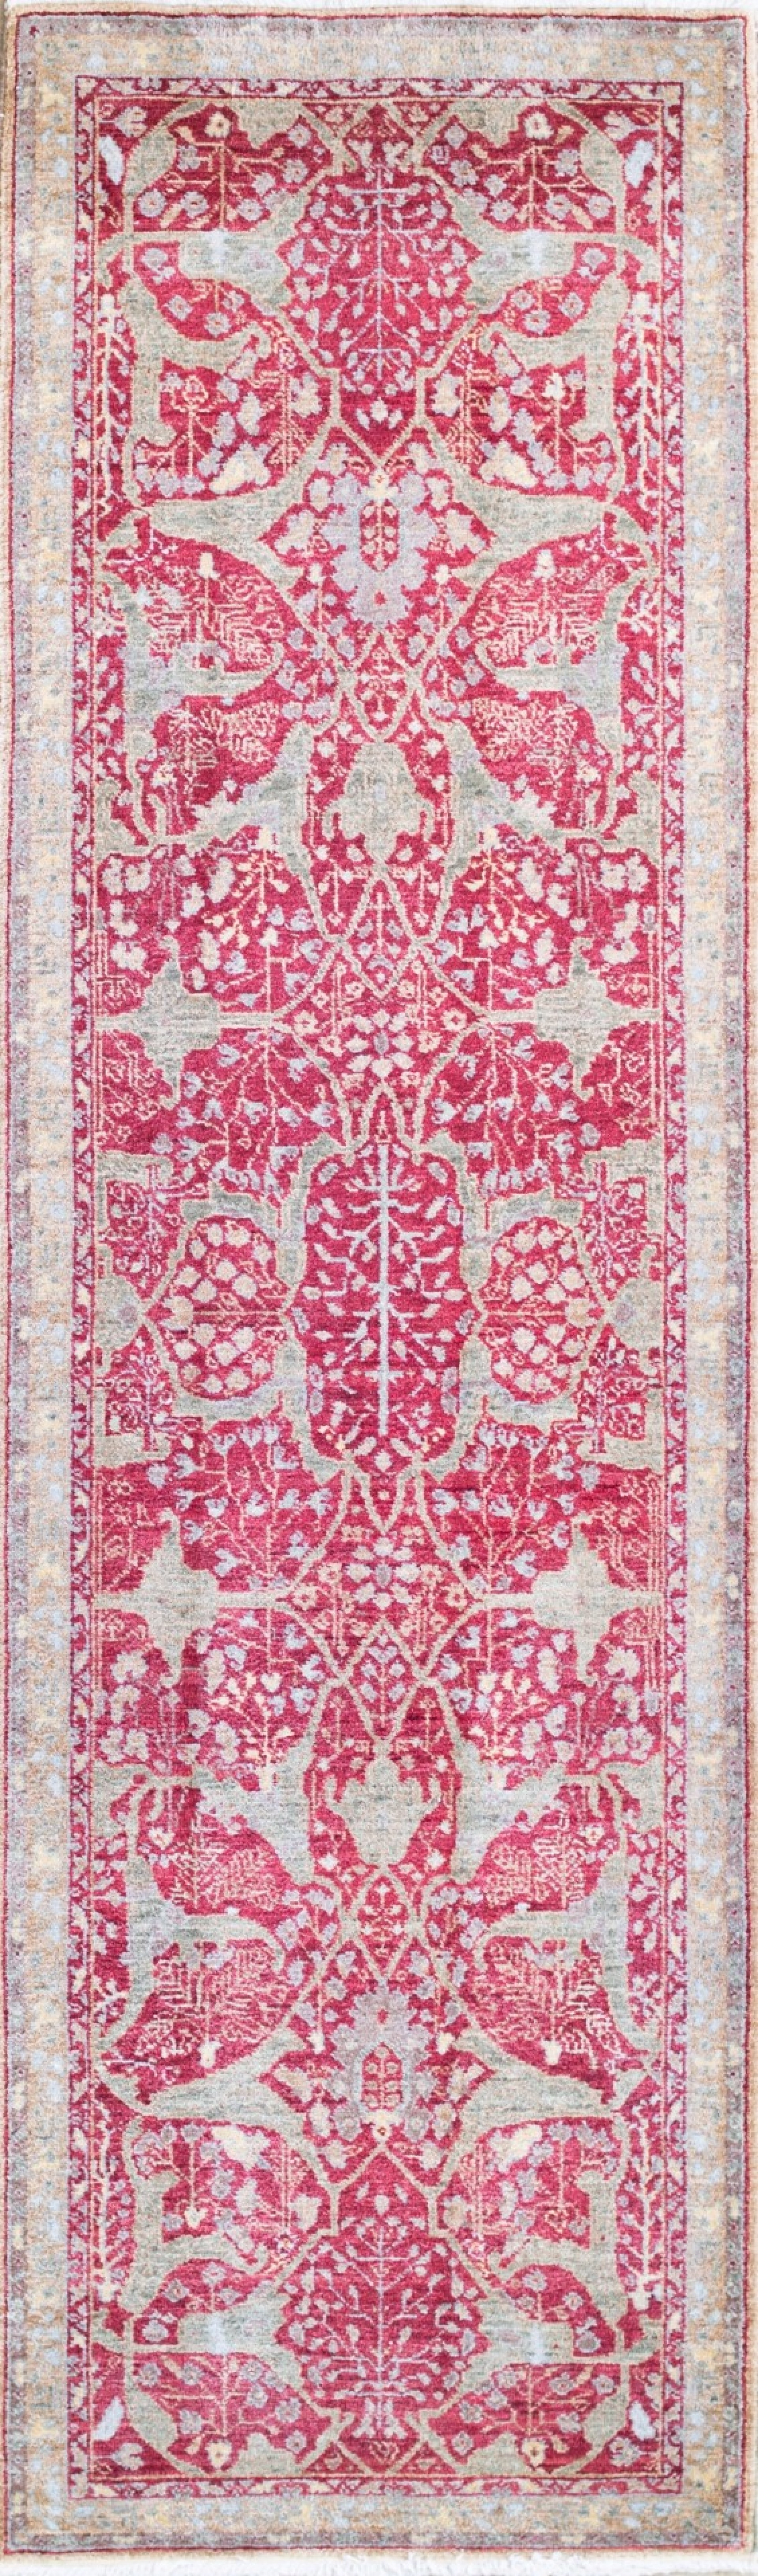 MAHABAD RUBY RUNNER